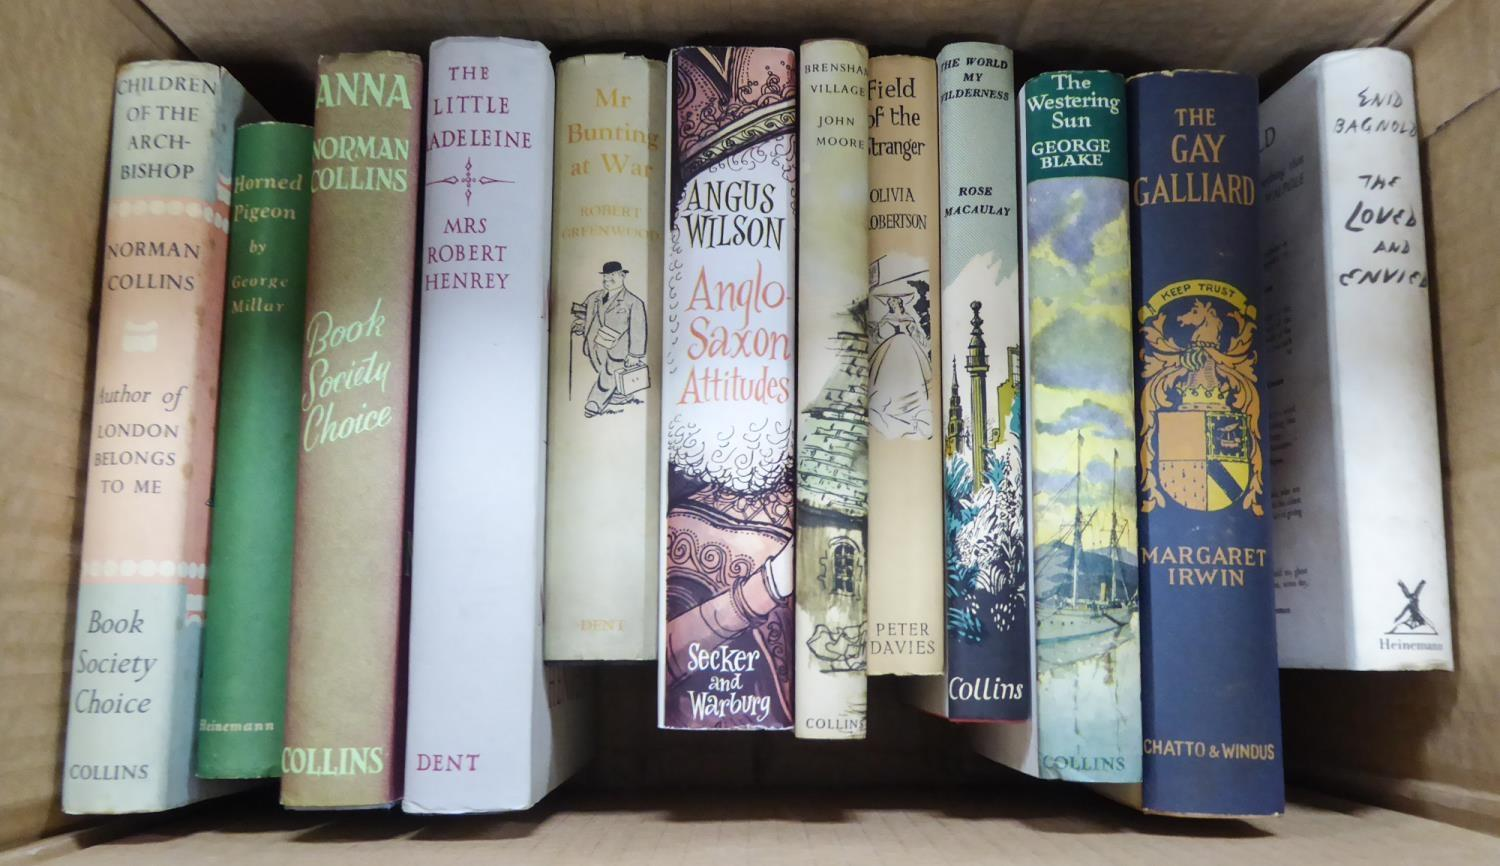 Lot 10 - SMALL SELECTION OF SIGNED MODERN FICTION TITLES, all in dust jackets, many 1st editions, to